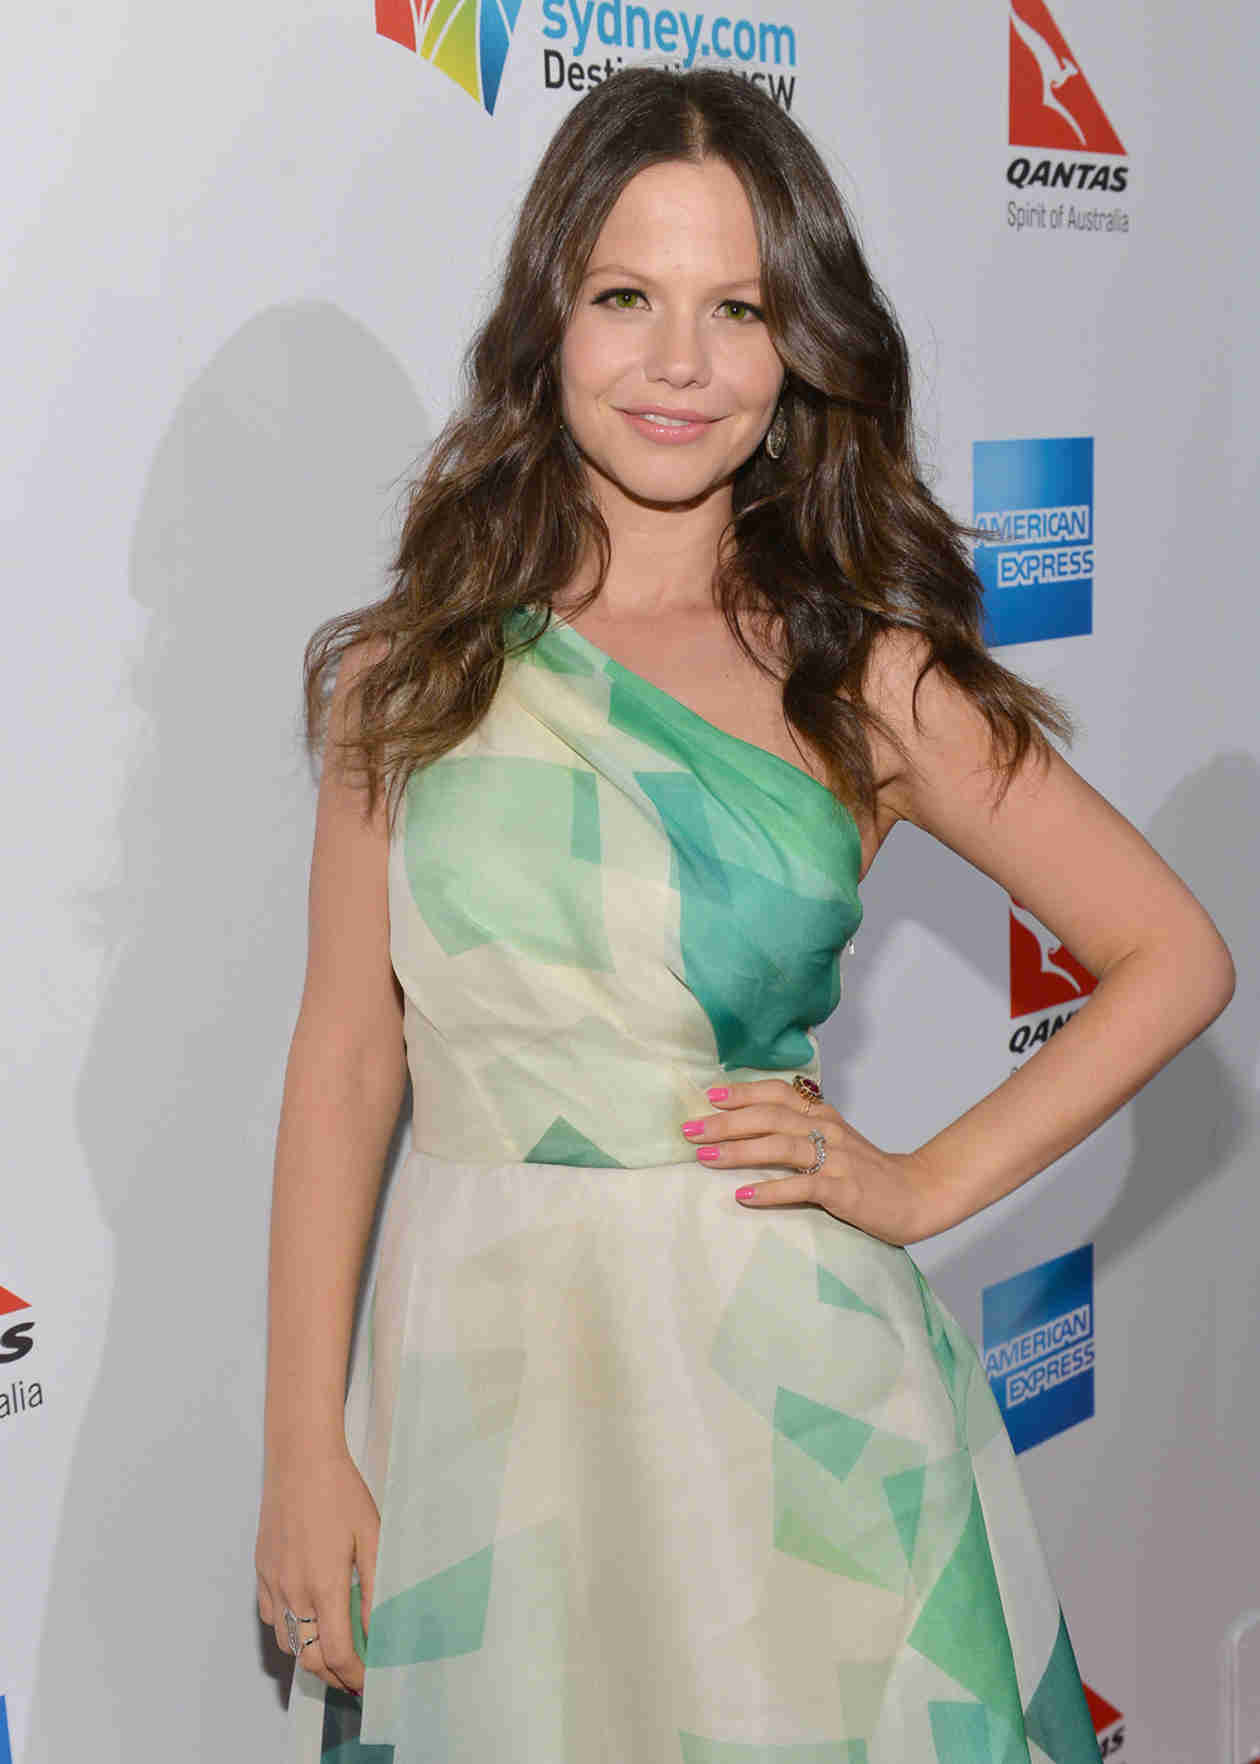 Tammin Sursok and Daughter Phoenix Take a Sleepy Selfie (PHOTO)